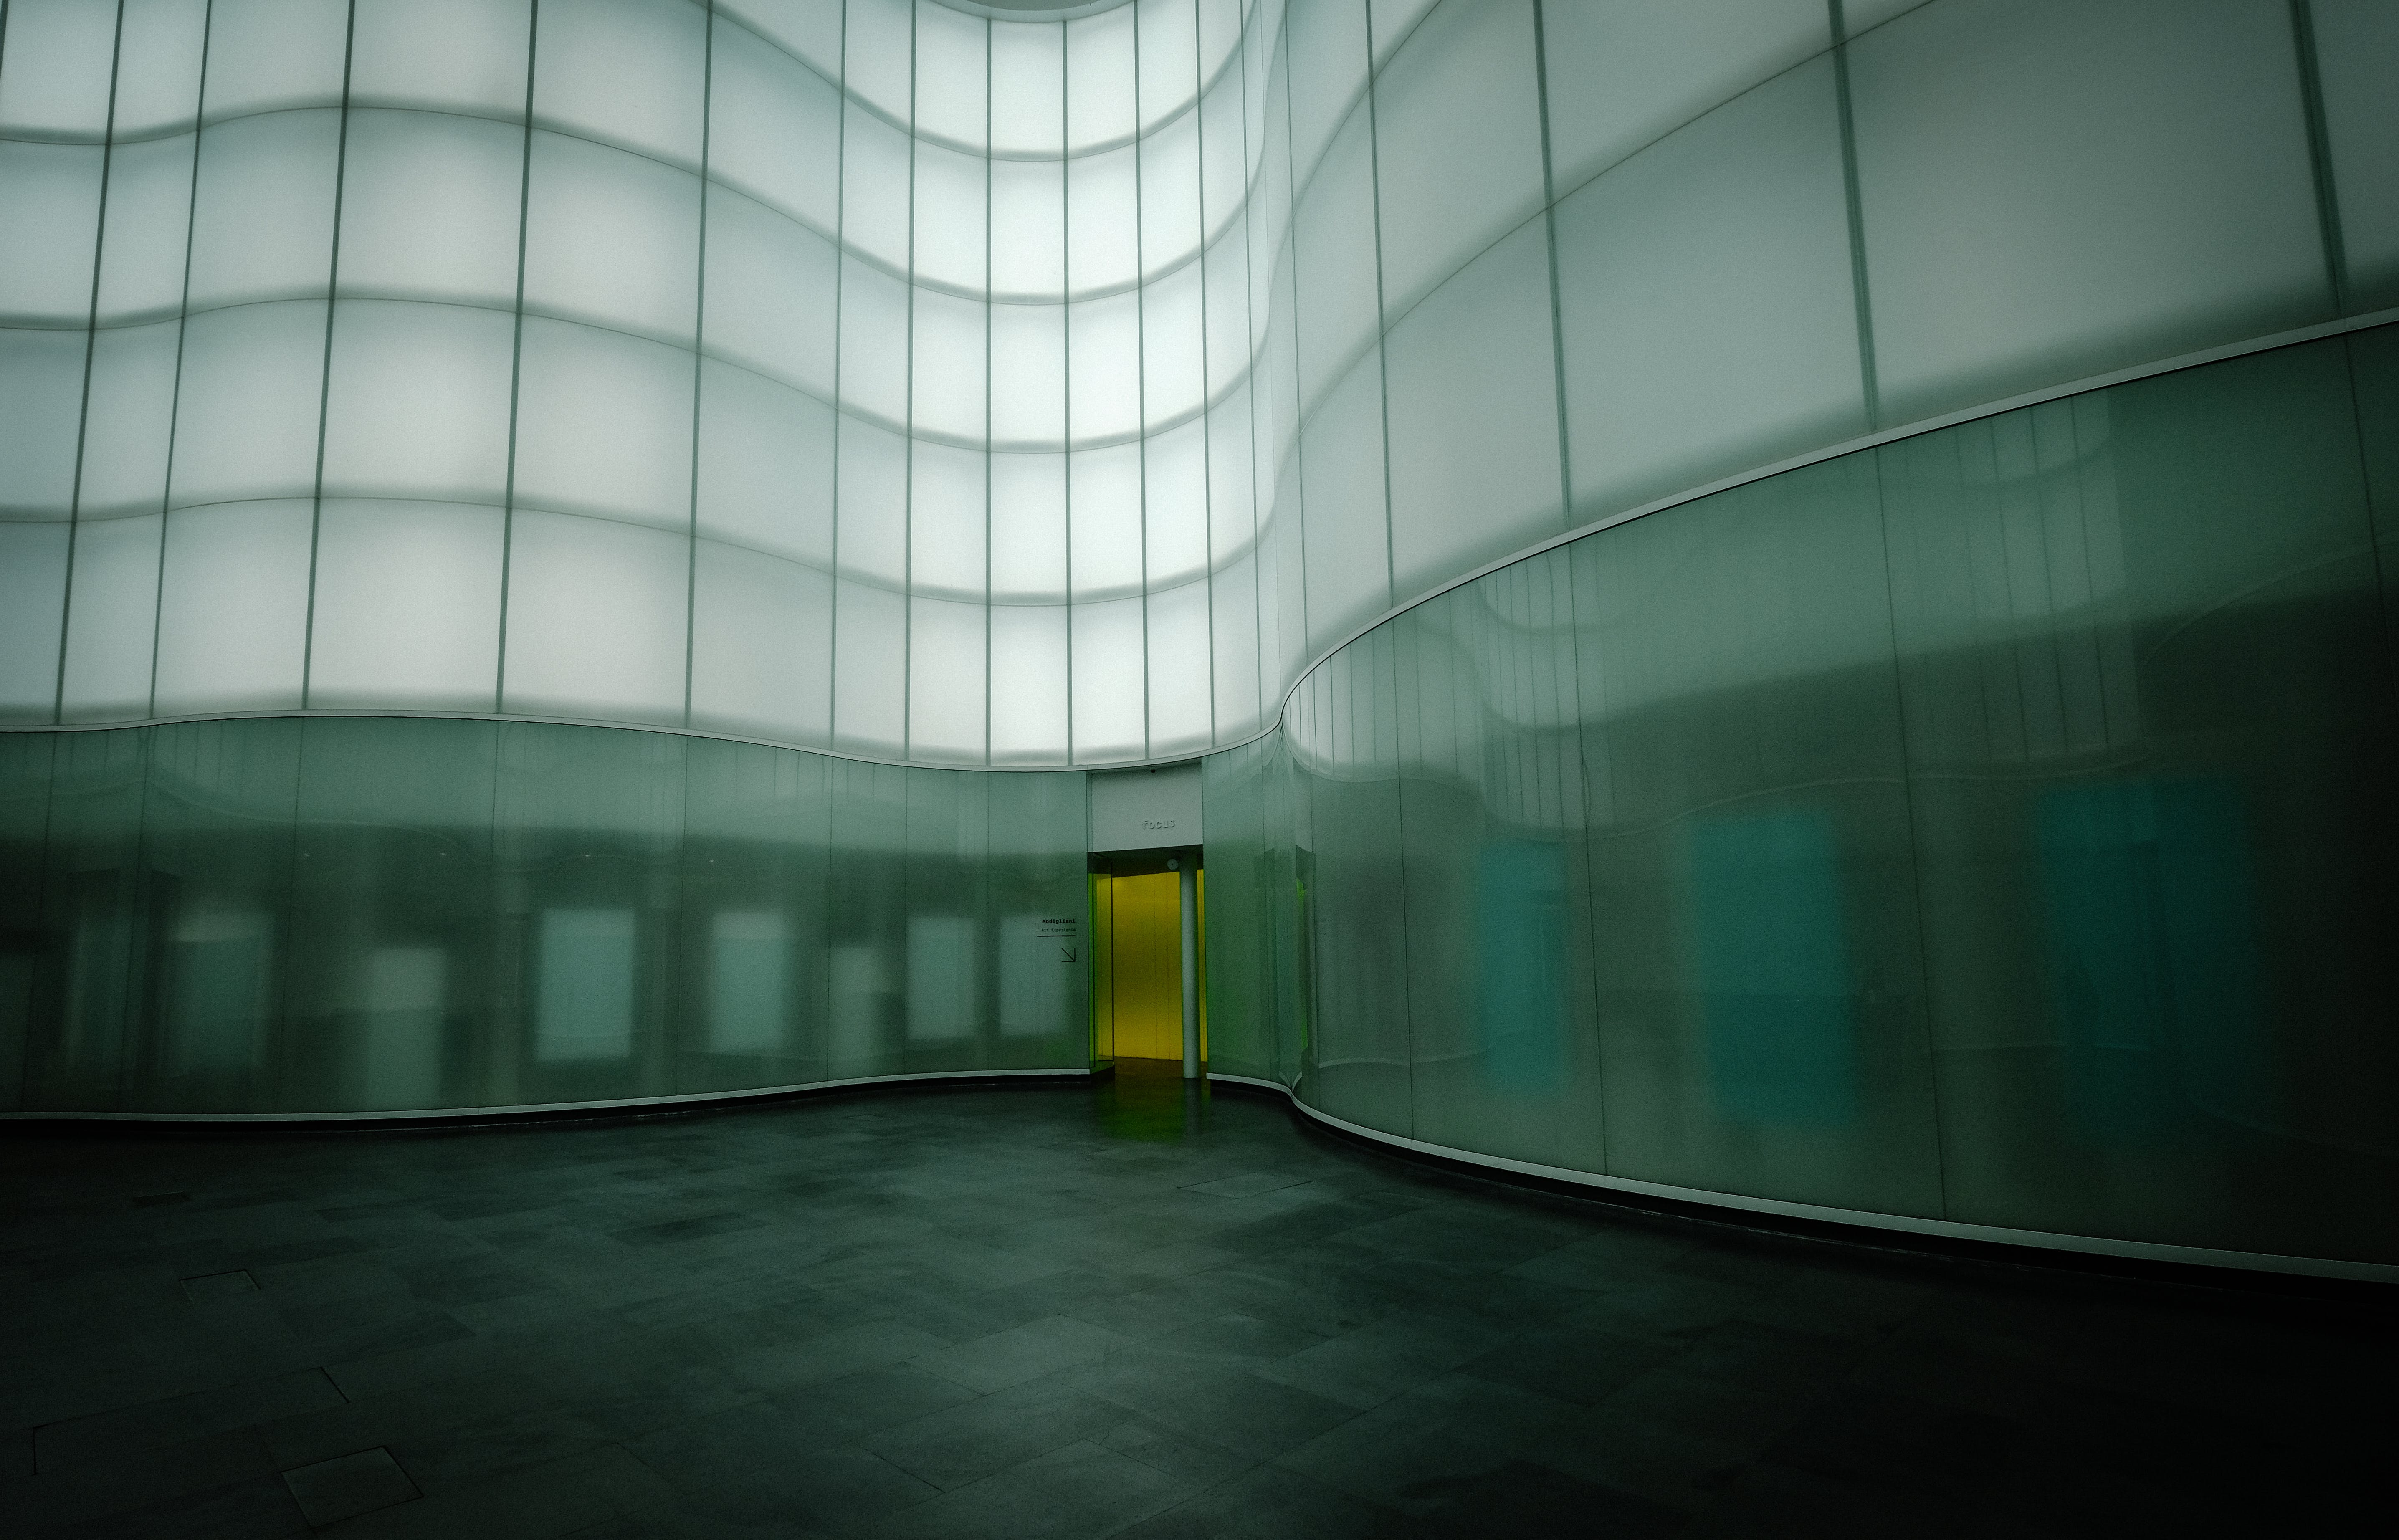 Free stock photo of light, building, glass, architecture